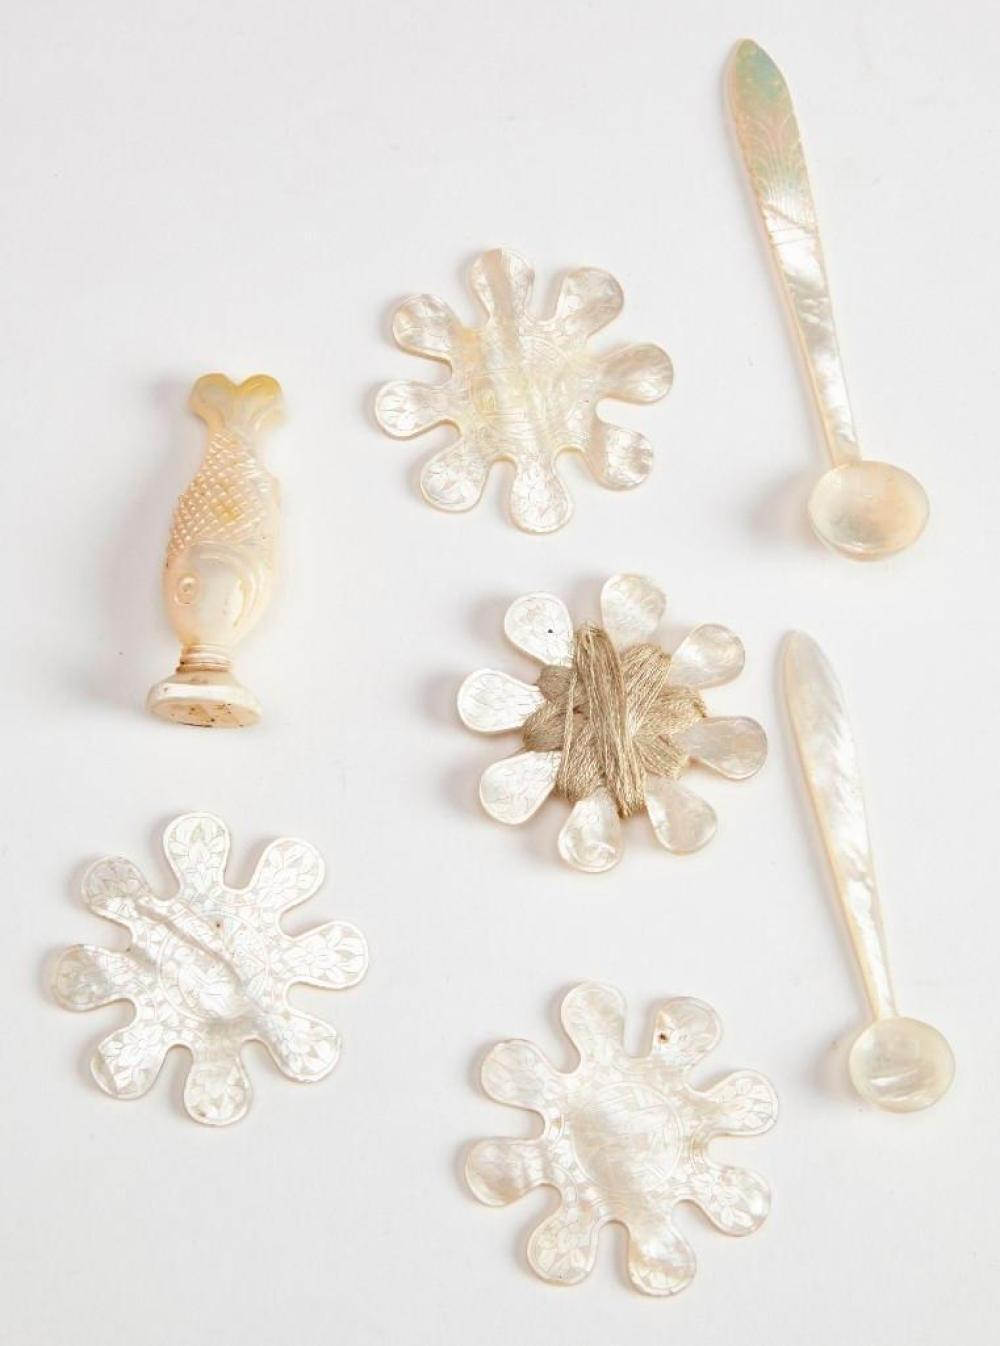 Antique Asian Mother of Pearl Sewing Items